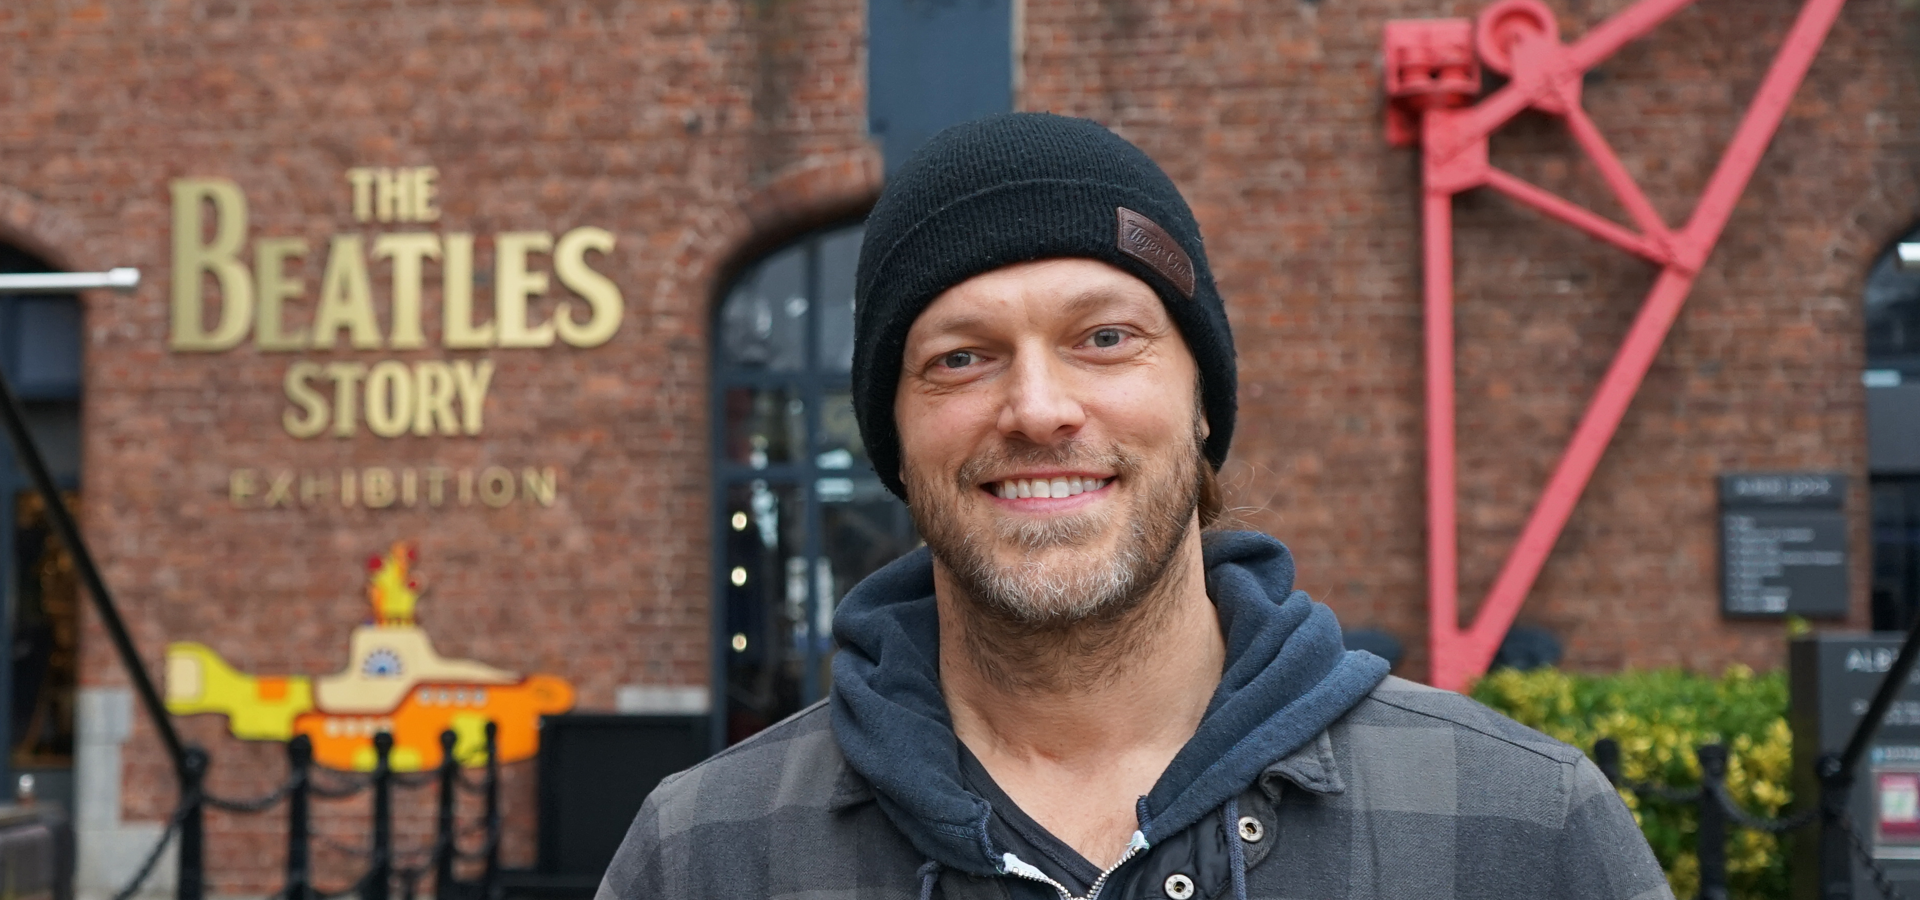 Edge: Wresting superstar visits The Beatles Story